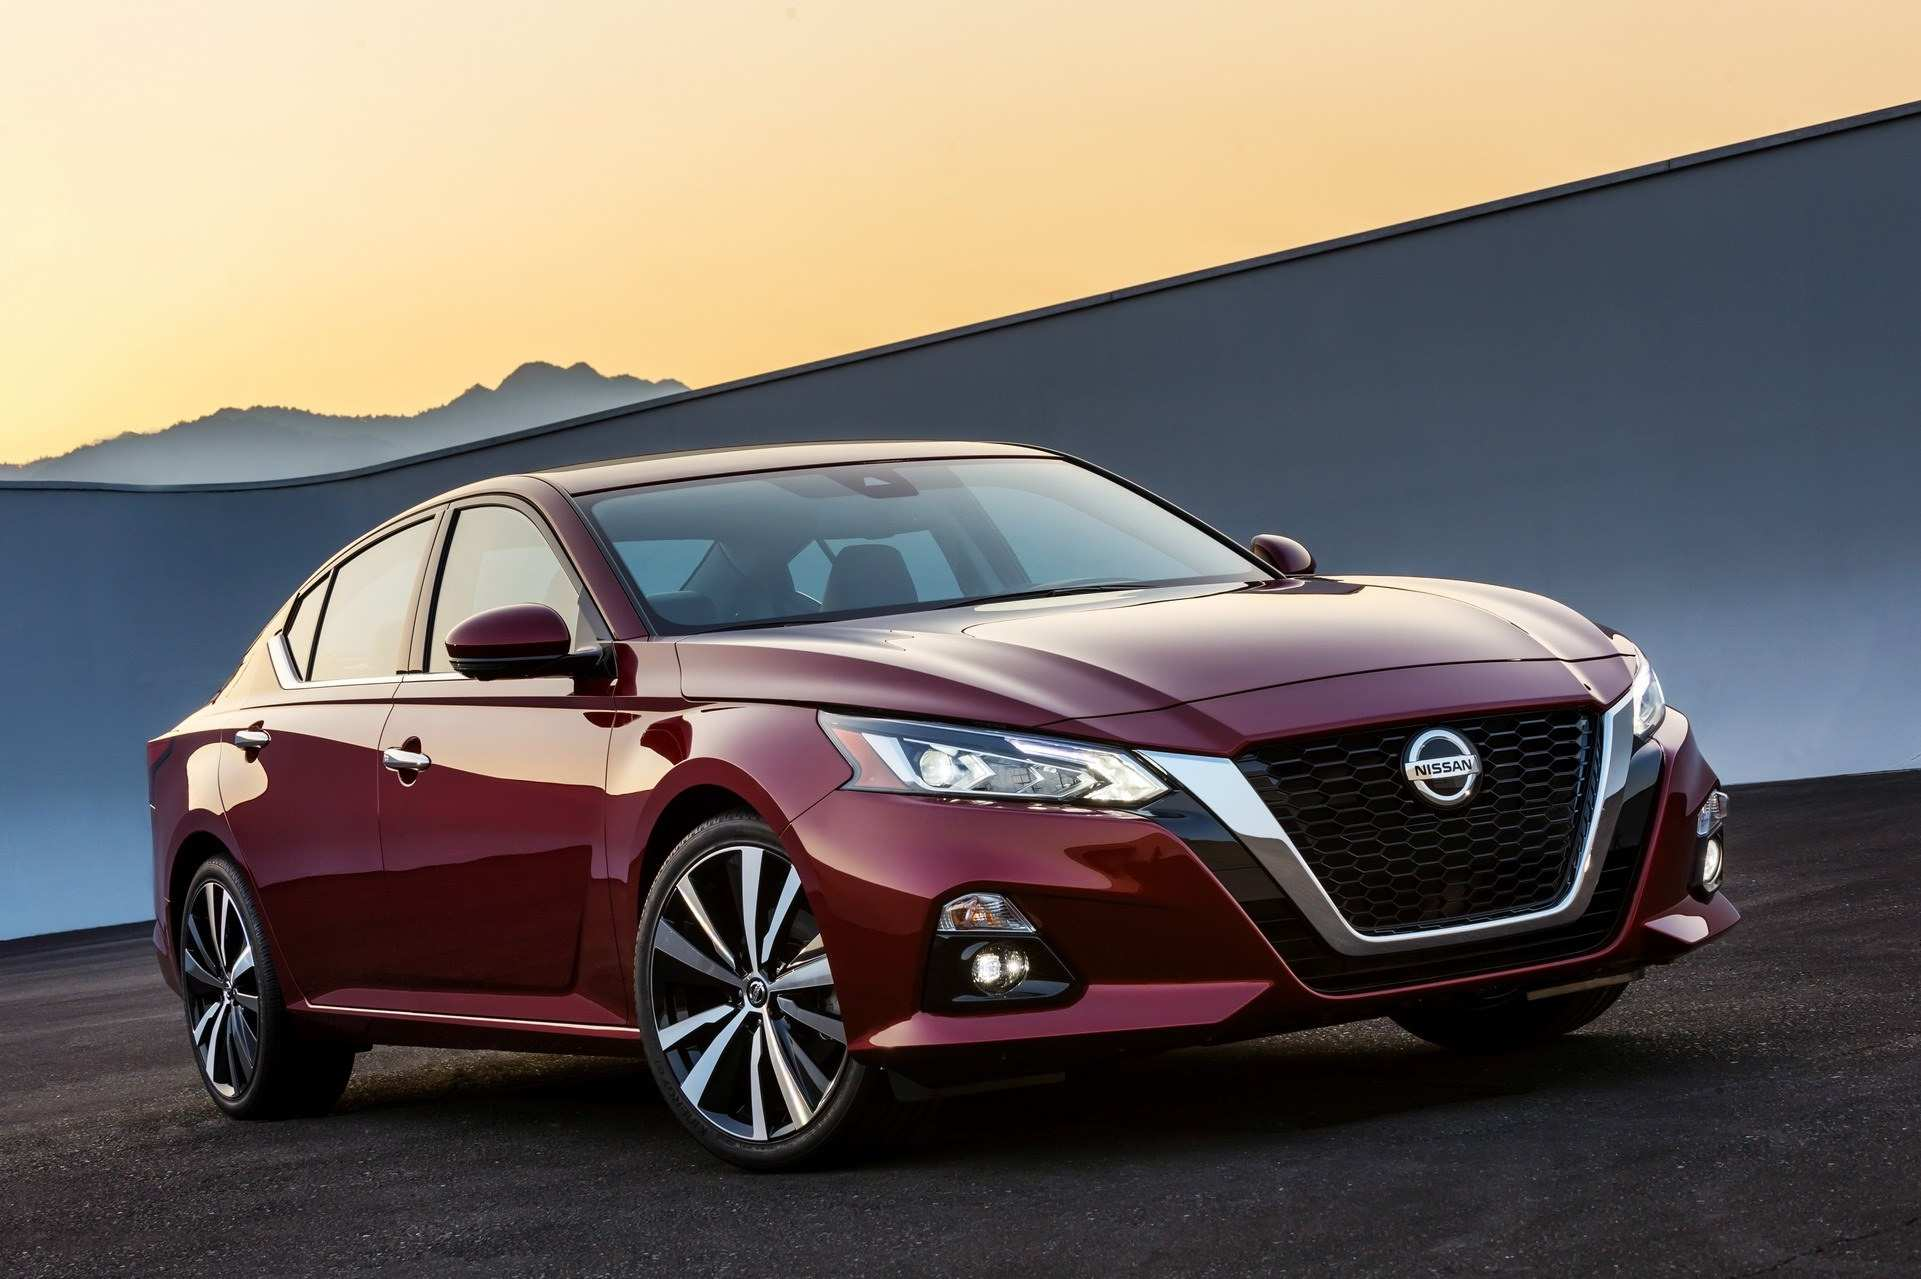 91 All New 2019 Nissan Lannia Prices